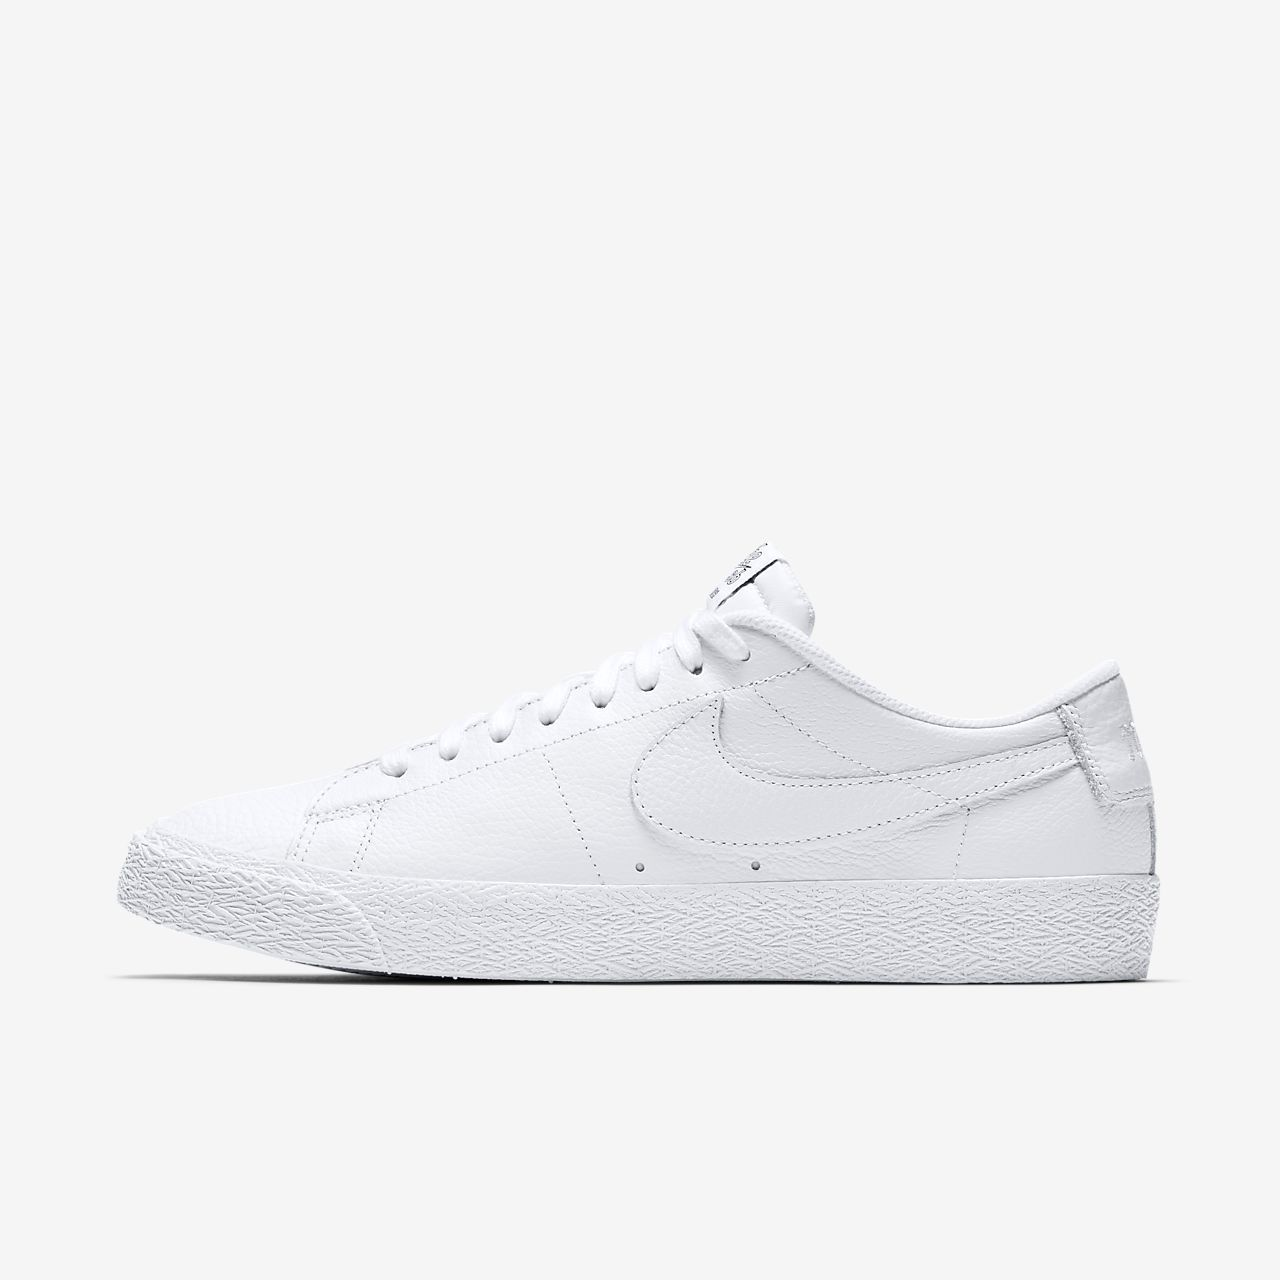 size 40 e35c8 6163b Nike SB Zoom Blazer Low NBA Skate Shoe | Wish List | Skate ...